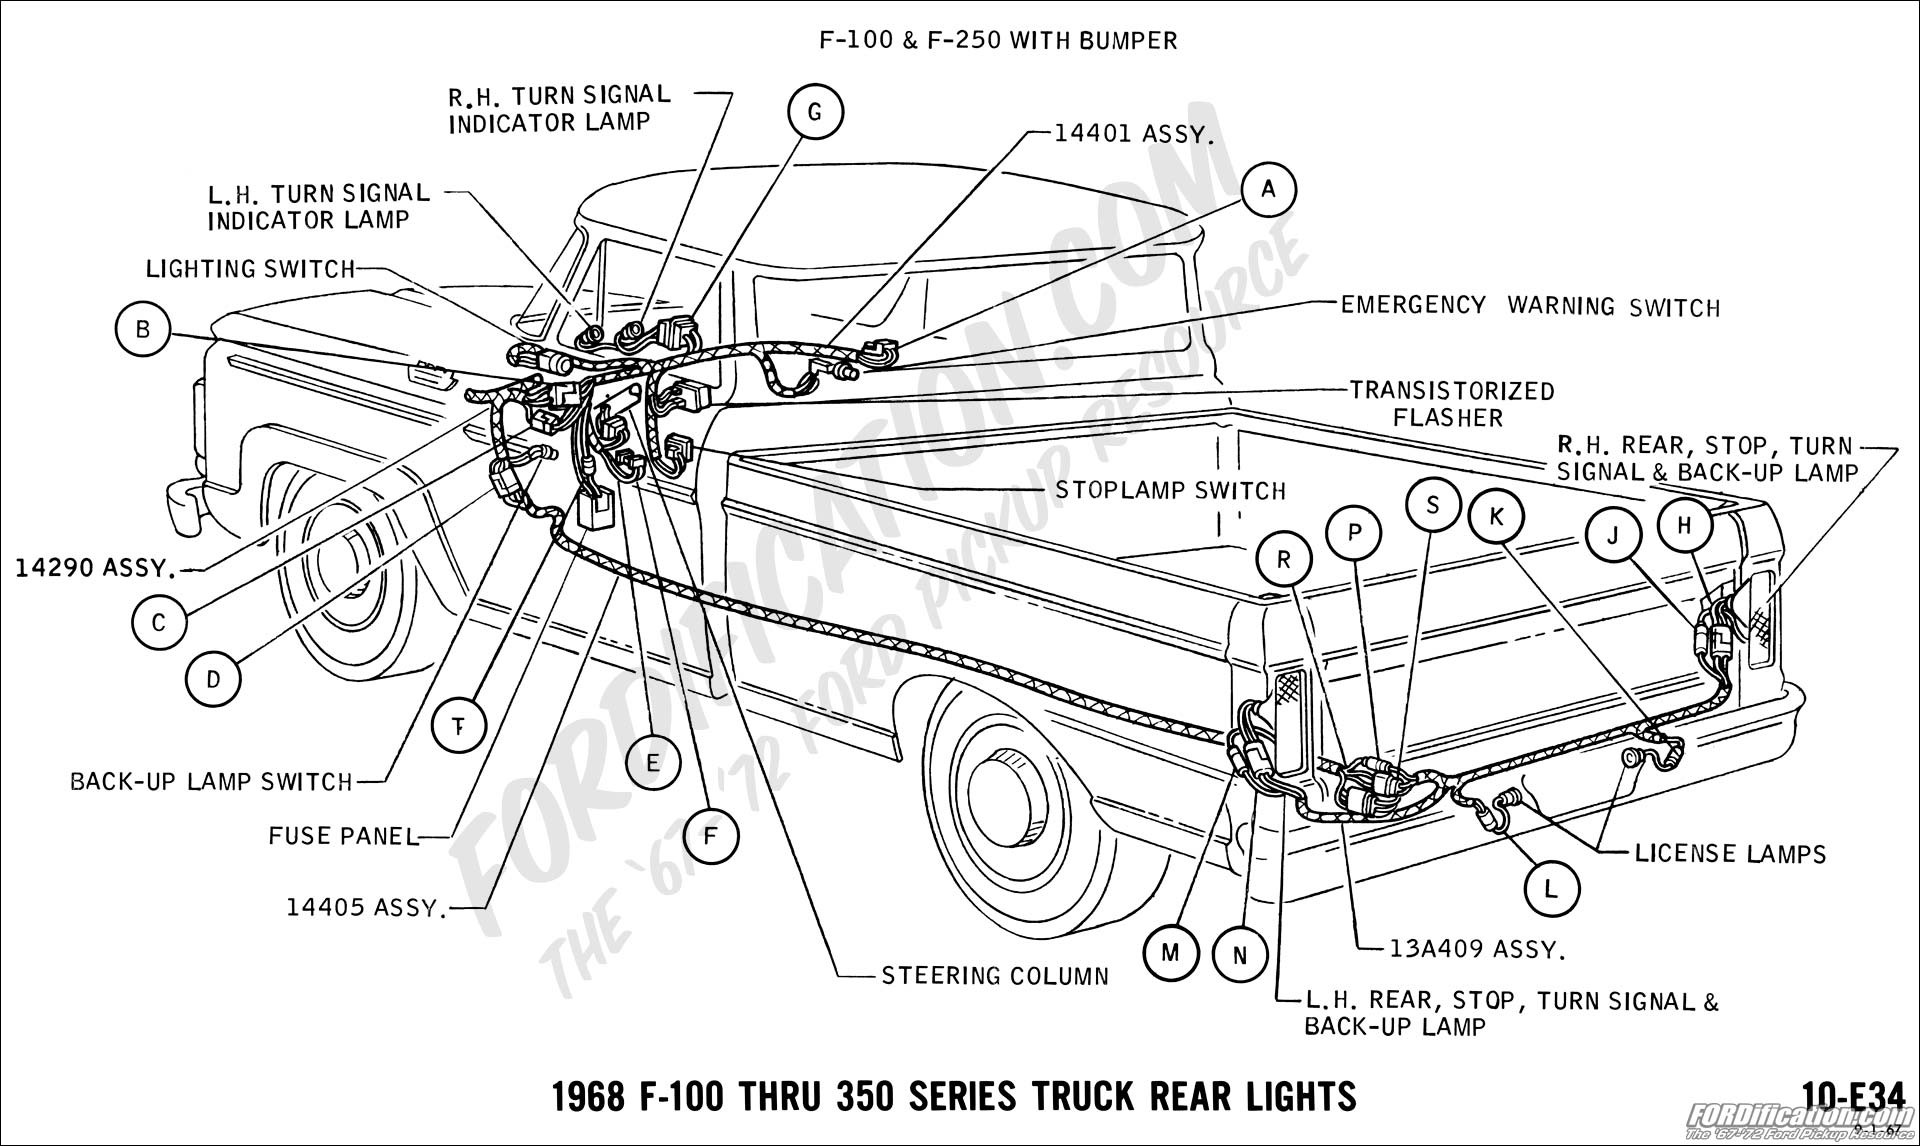 1996 Toyota Tacoma 4x4 Parts Diagram Start Building A Wiring Rav4 Engine Used 1997 Ta Plete Engines Rh Detoxicrecenze Com Black Suspension